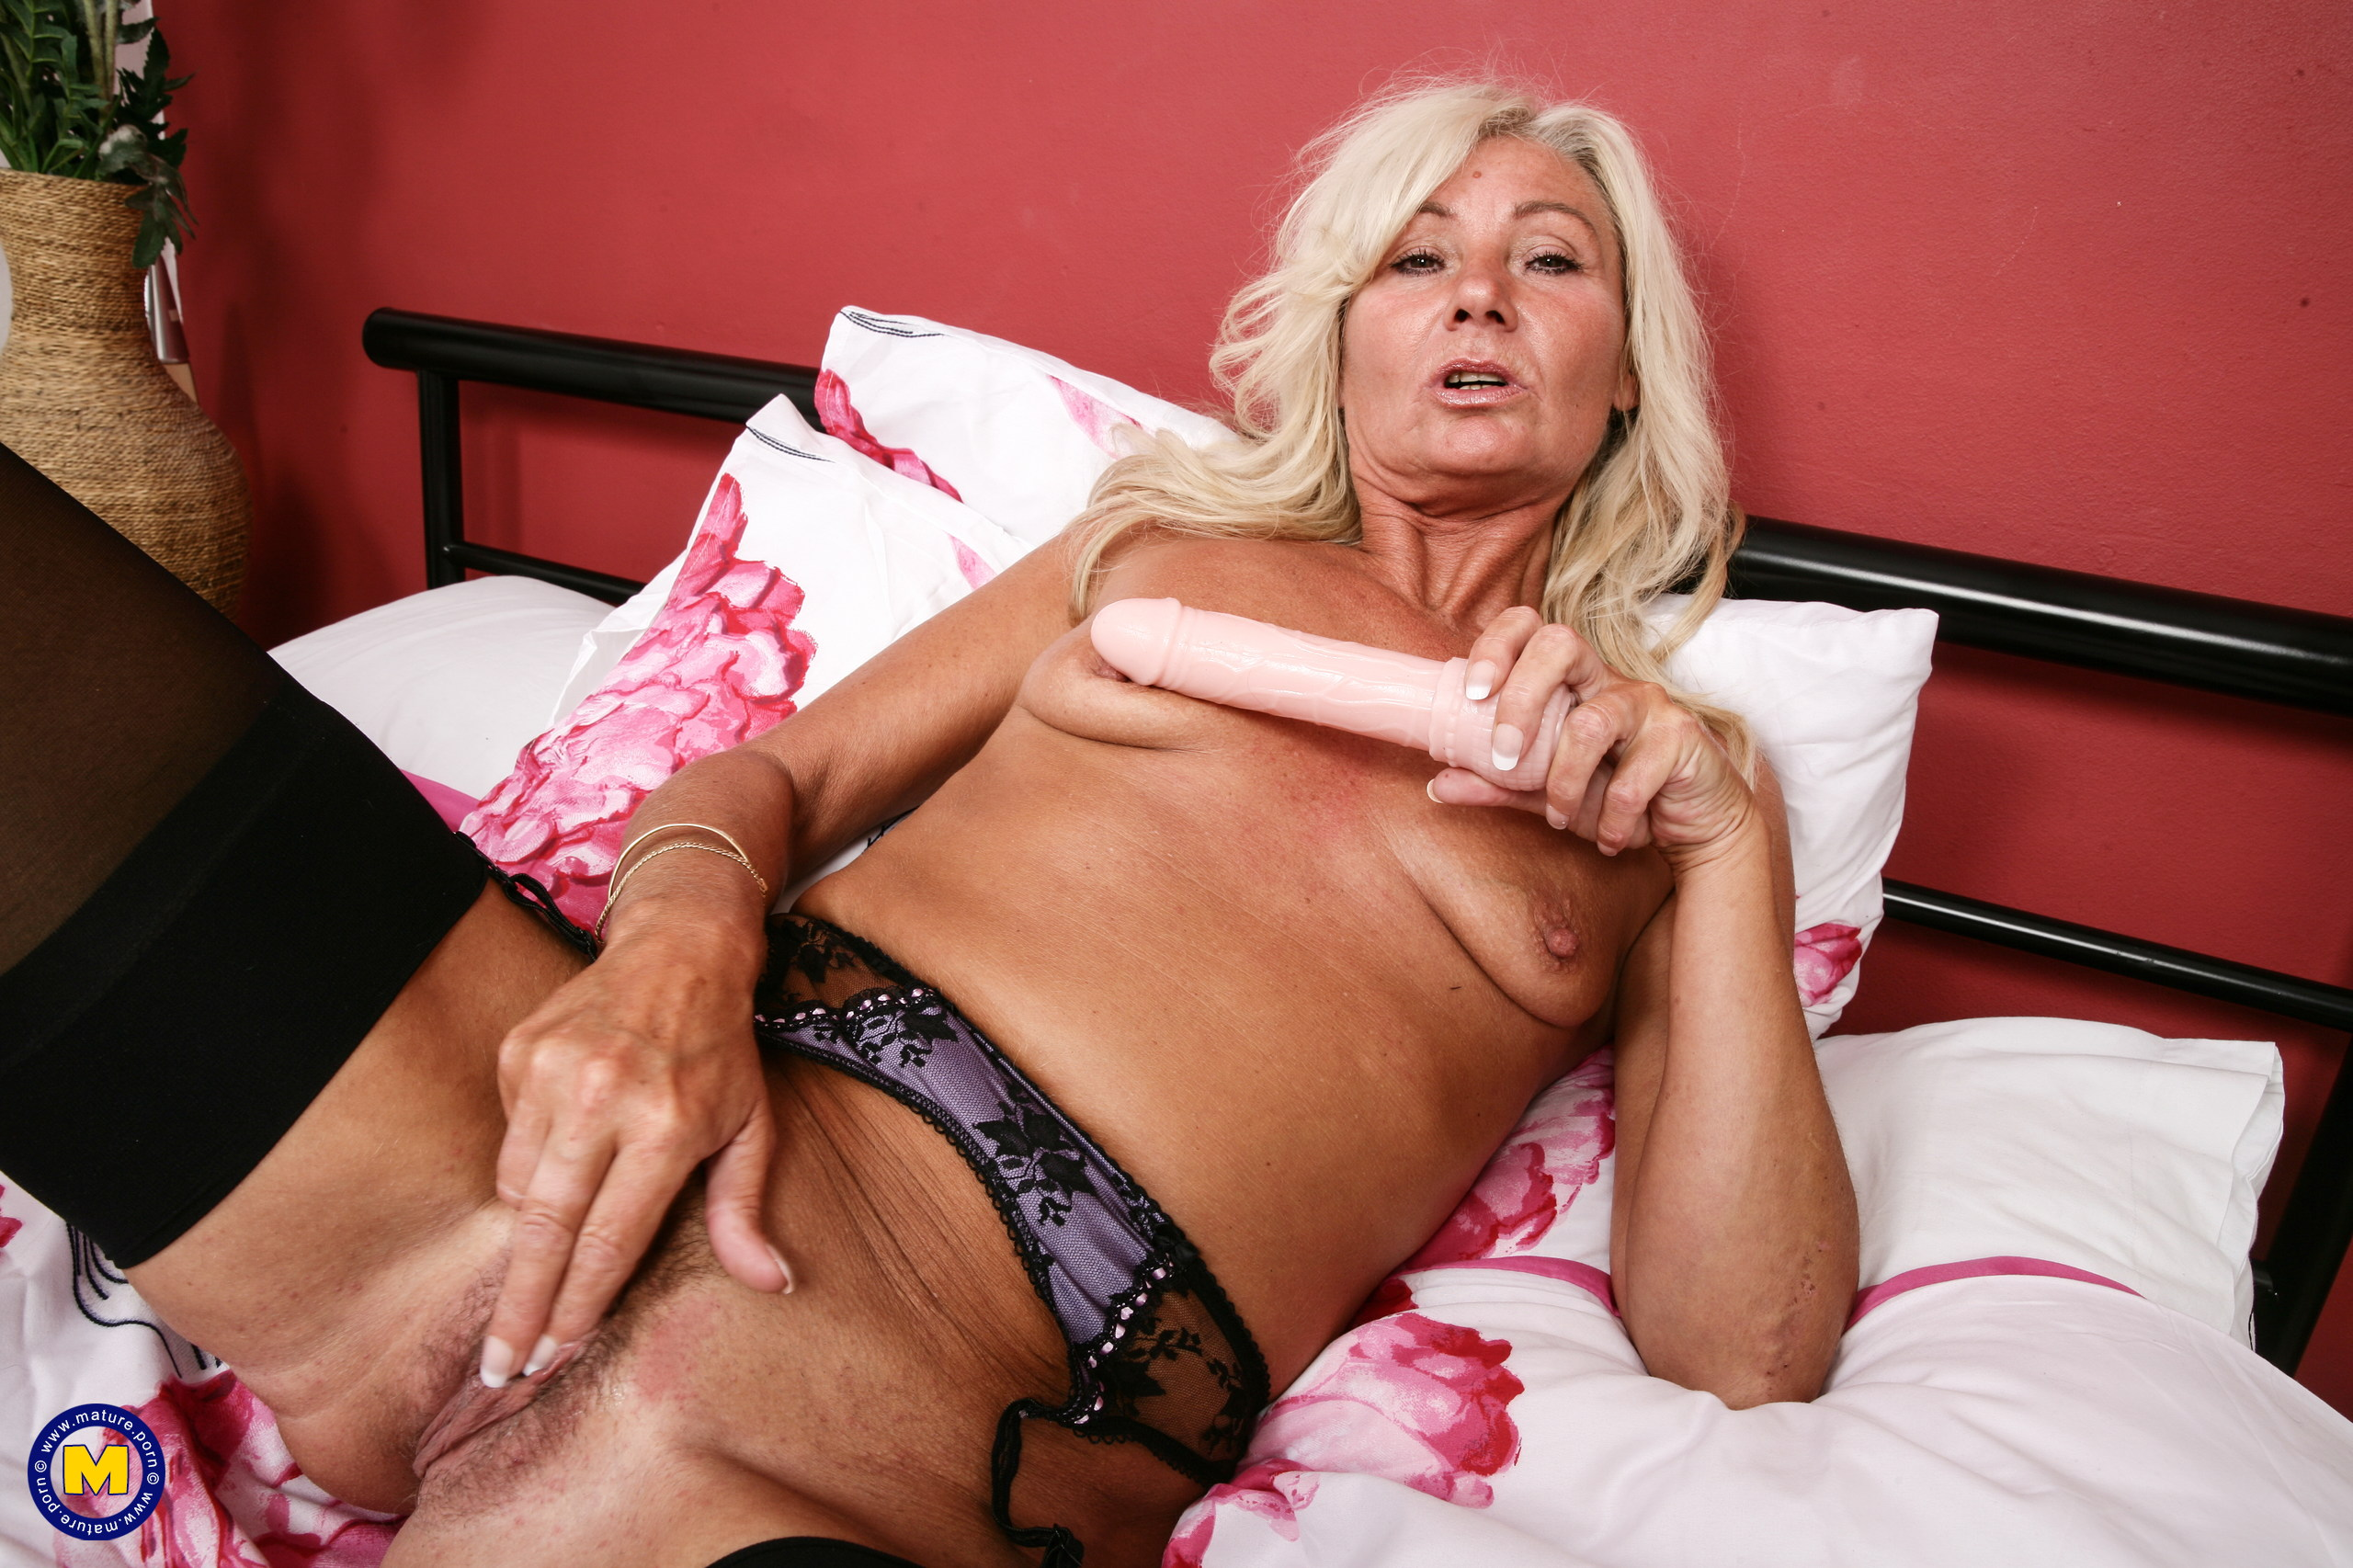 Nasty housewife from the uk playing with herself